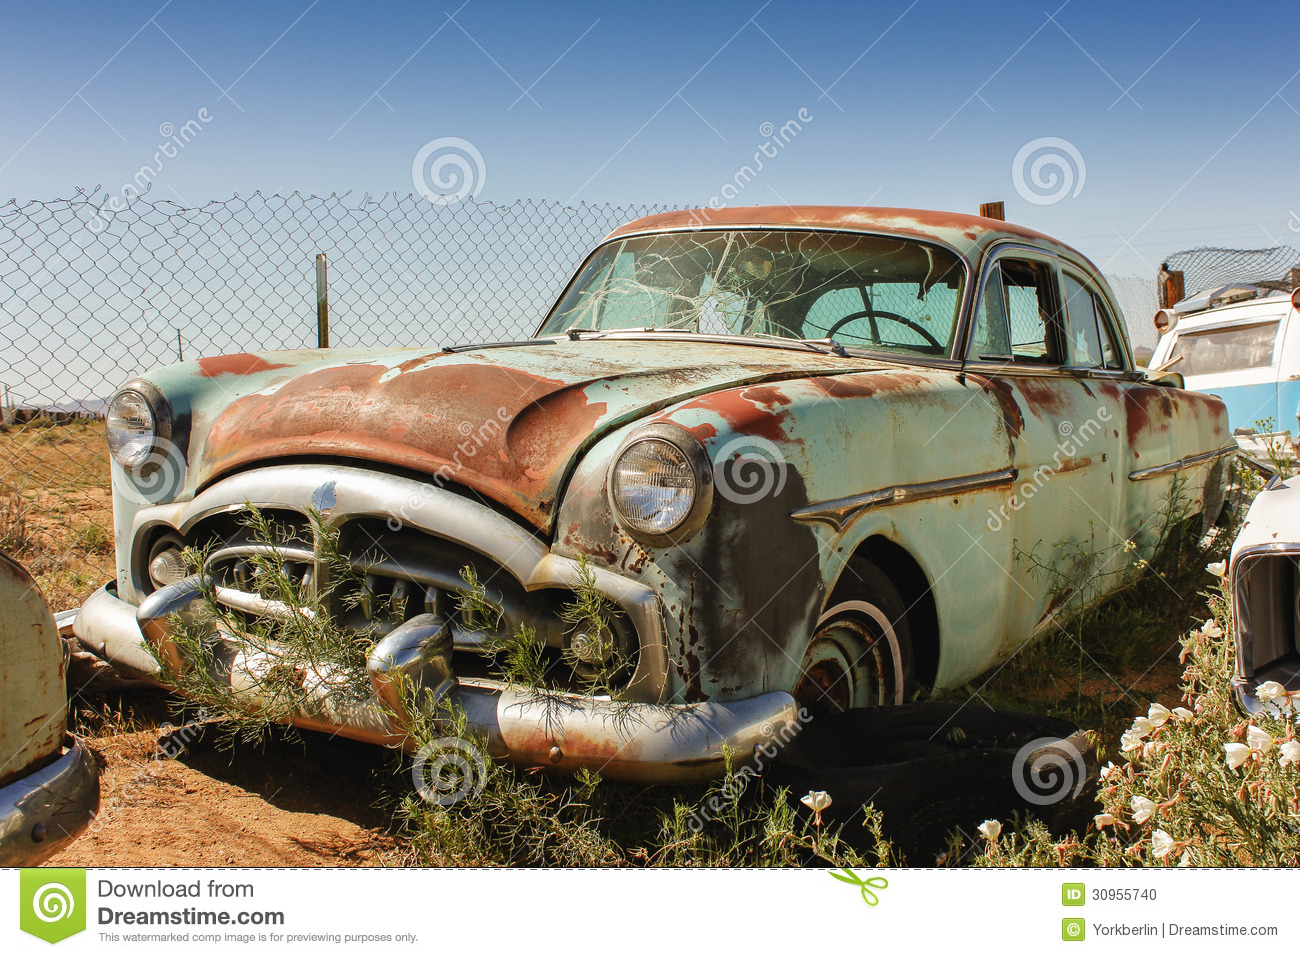 Old rusty car stock photo. Image of yard, nostalgia, forgotten ...